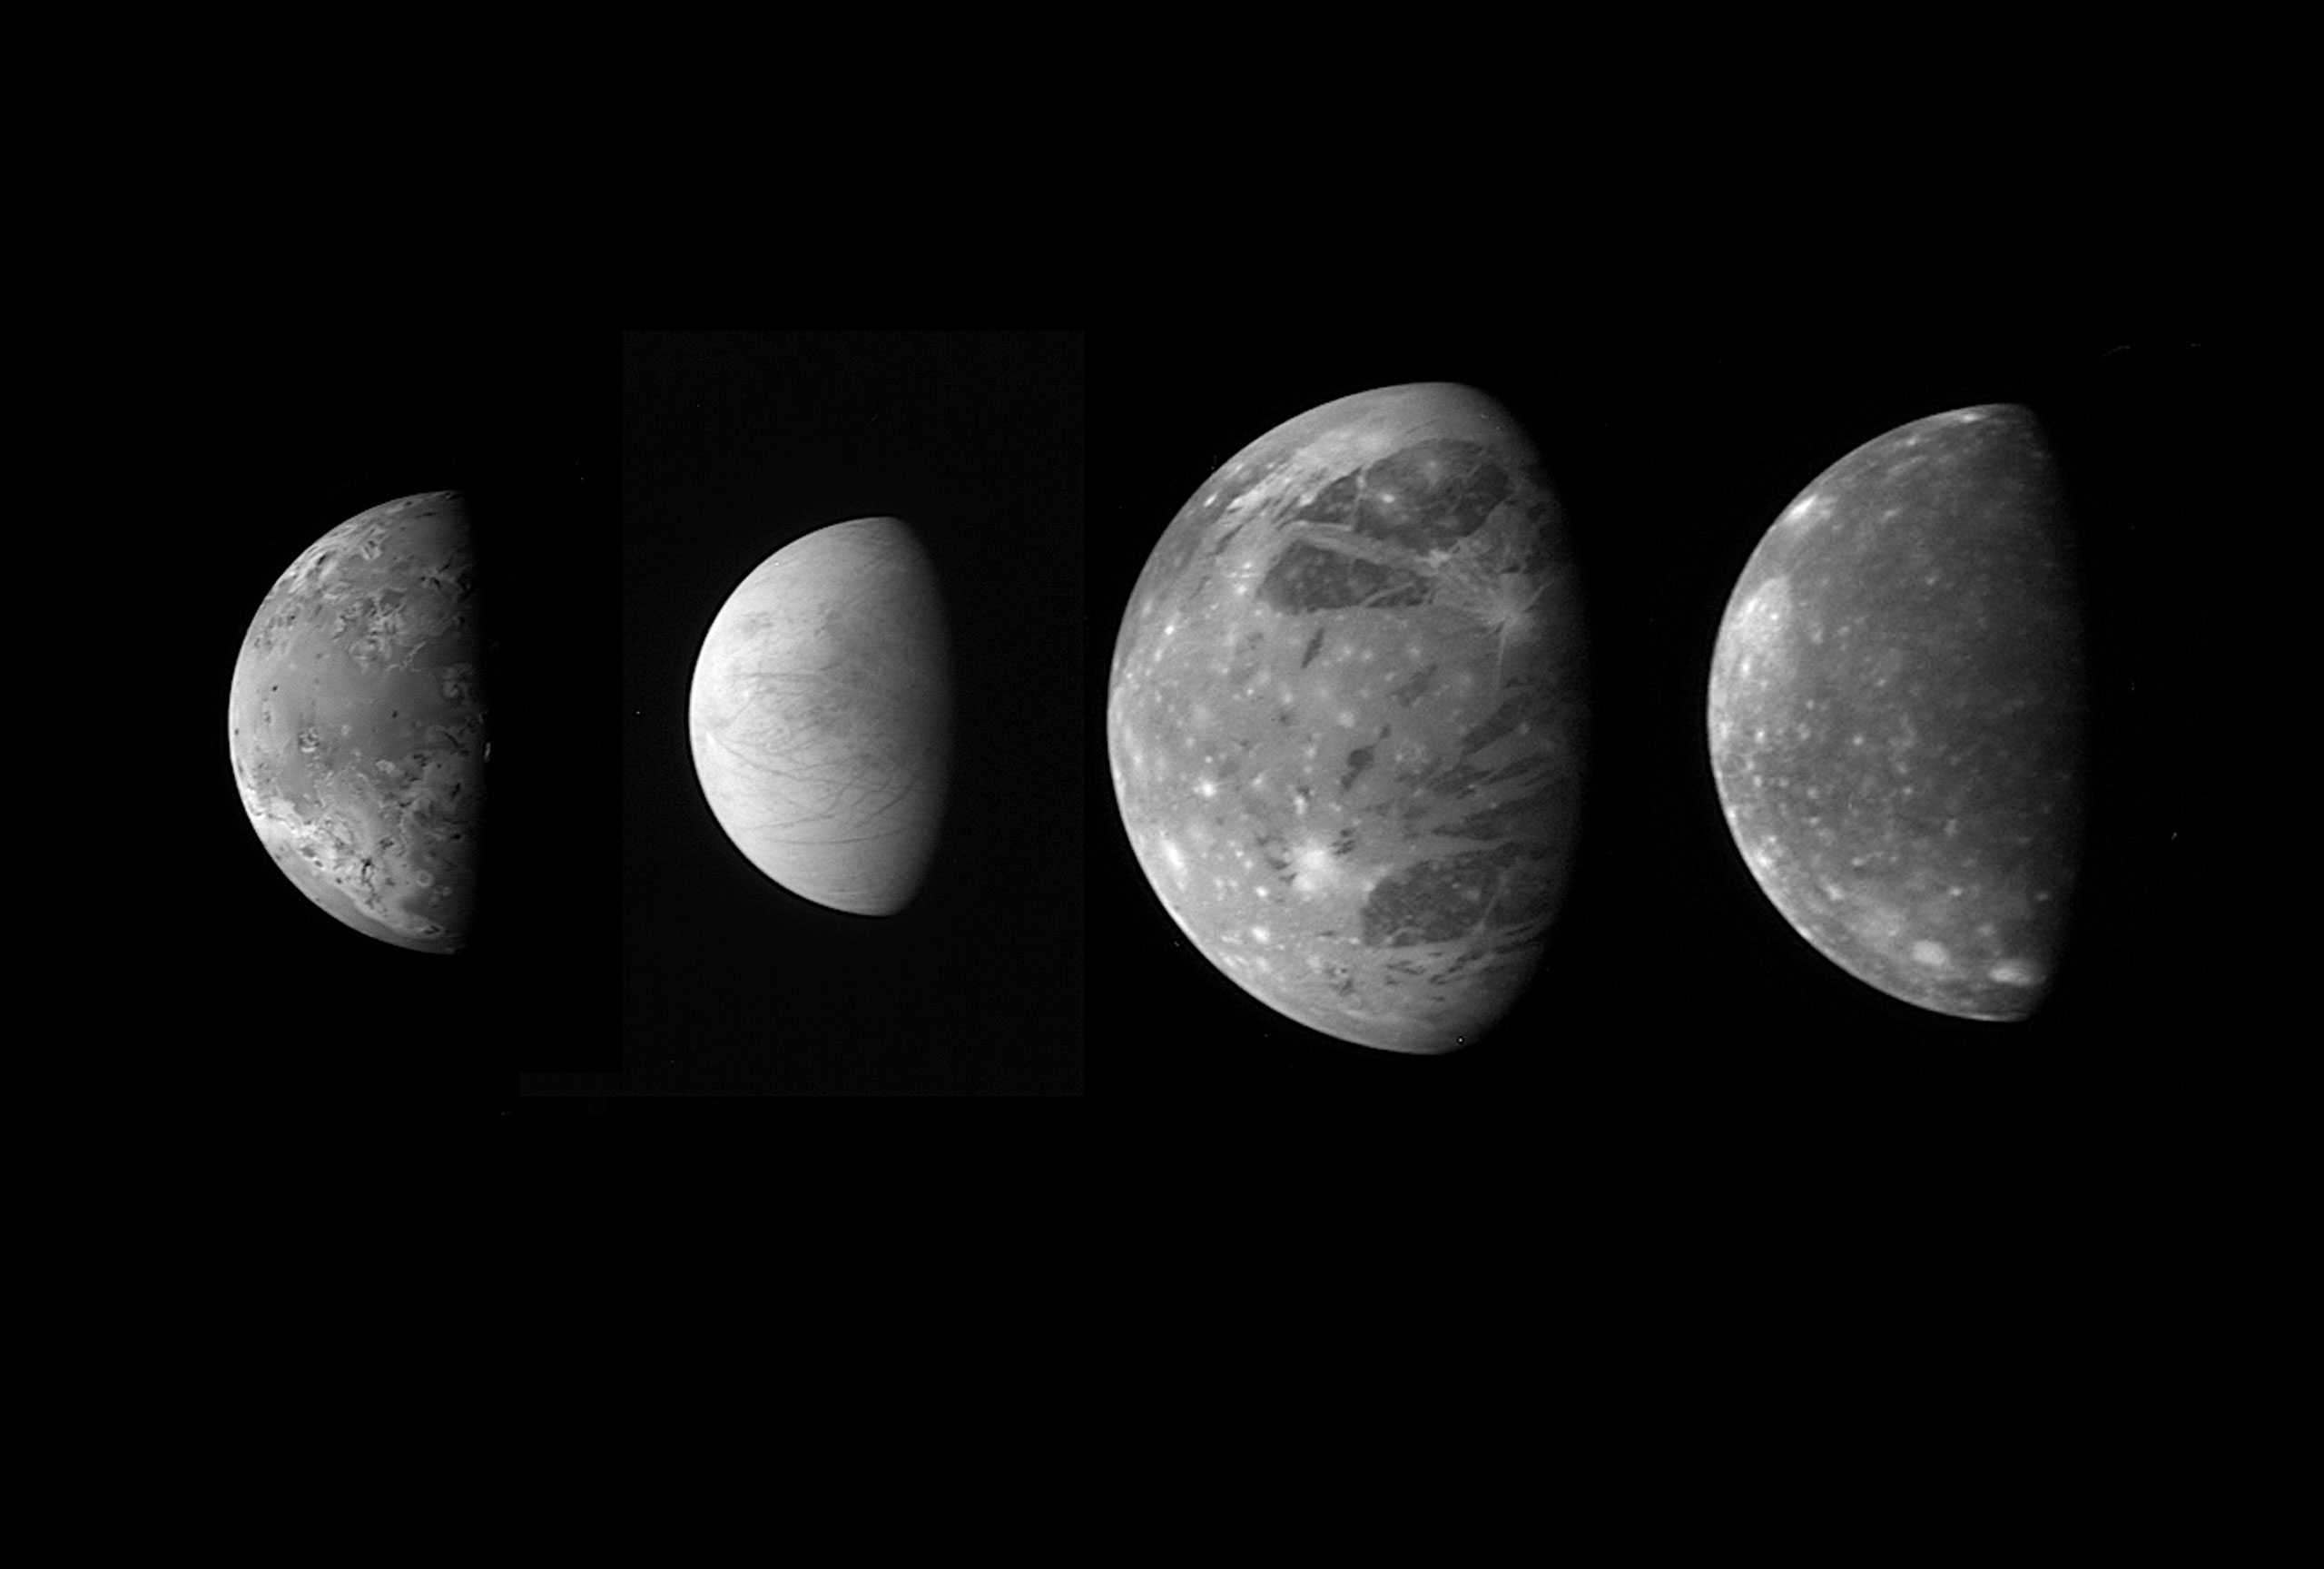 """A montage of the best views of Jupiter's four """"Galilean"""" satellites as seen by the Long Range Reconnaissance Imager (LORRI) on the New Horizons spacecraft during its flyby of Jupiter in late Feb. 2007. The four moons are, from left to right: Io, Europa, Ganymede and Callisto. The images have been scaled to represent the true relative sizes of the four moons and are arranged in their order from Jupiter."""